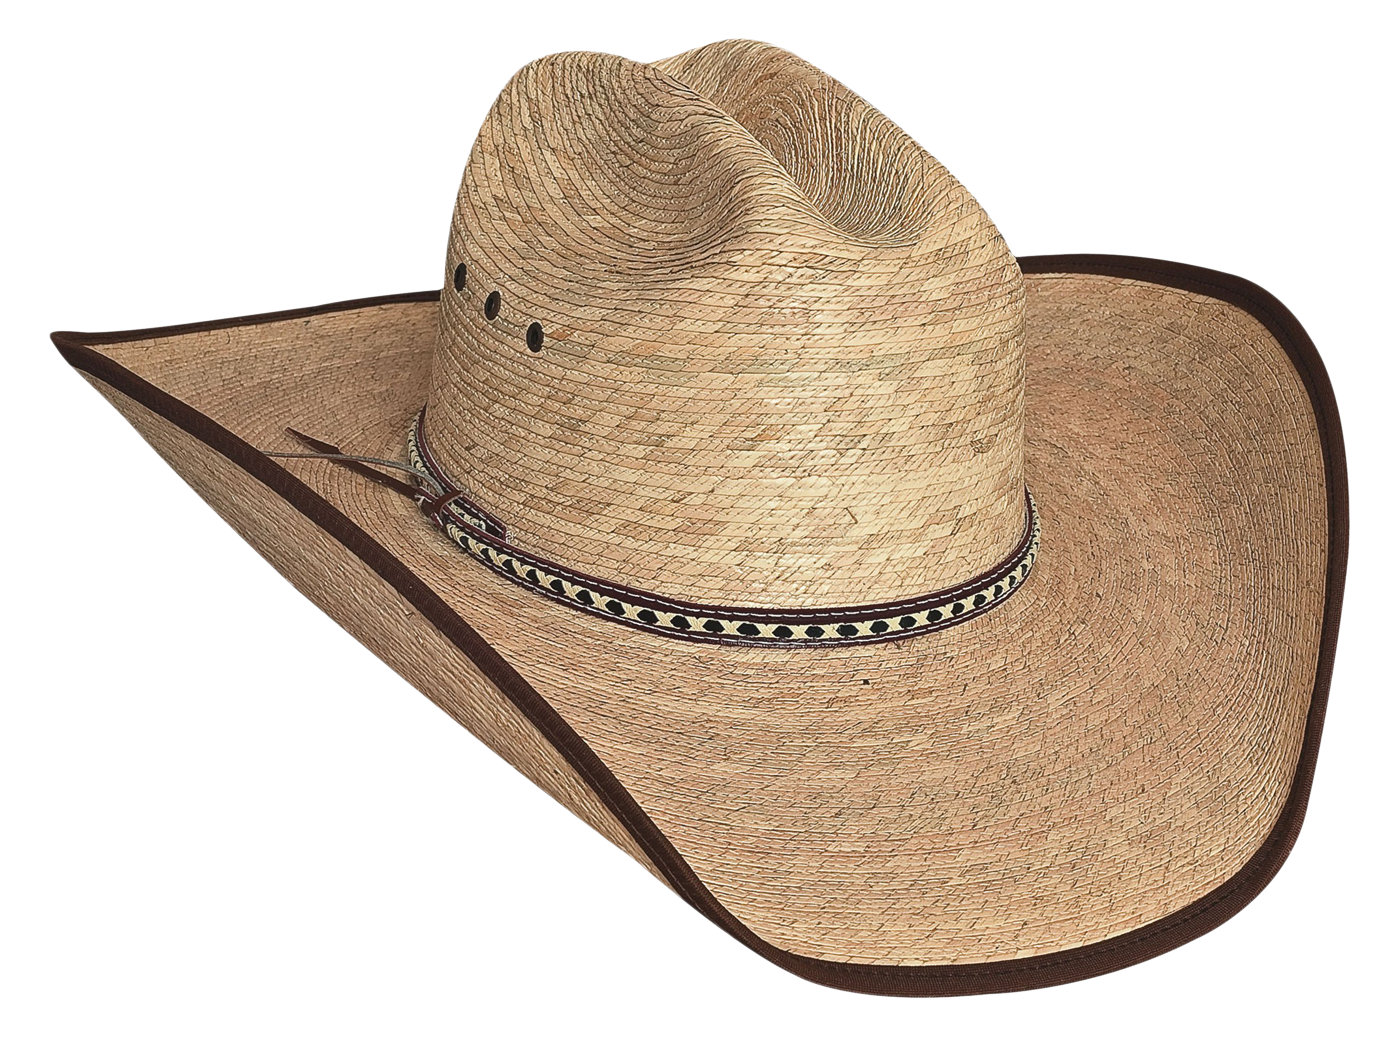 Sun hat clipart transparent picture stock Cowboy Hat PNG Transparent Free Images | PNG Only picture stock